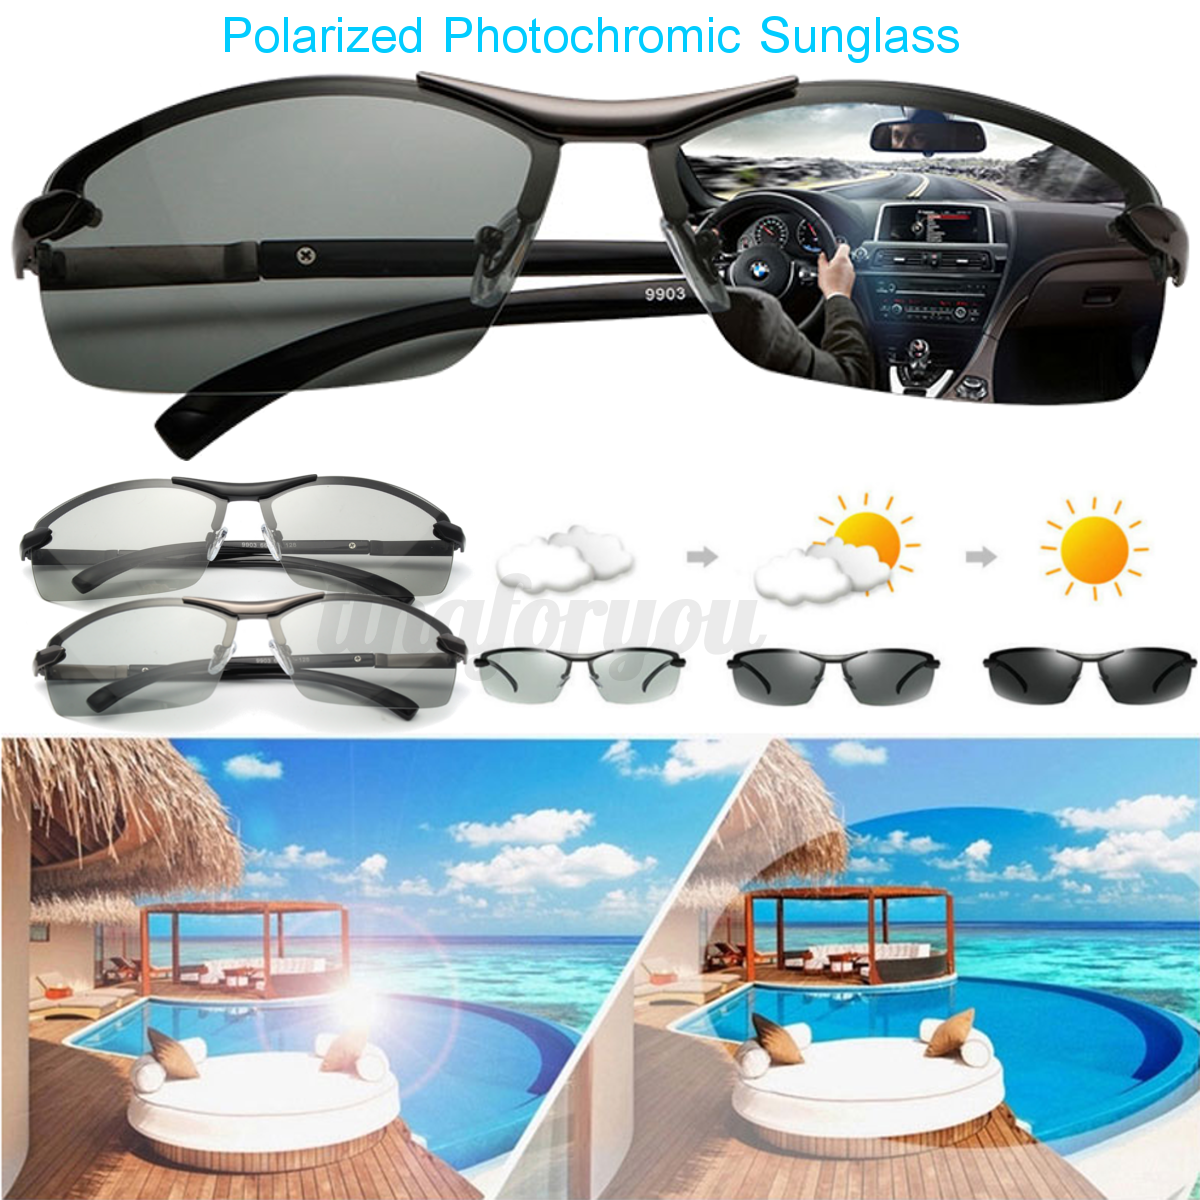 97054c4bb9b Details about UV400 Polarized Photochromic Sunglasses Men s Driving  Transition Lens Sunglasses